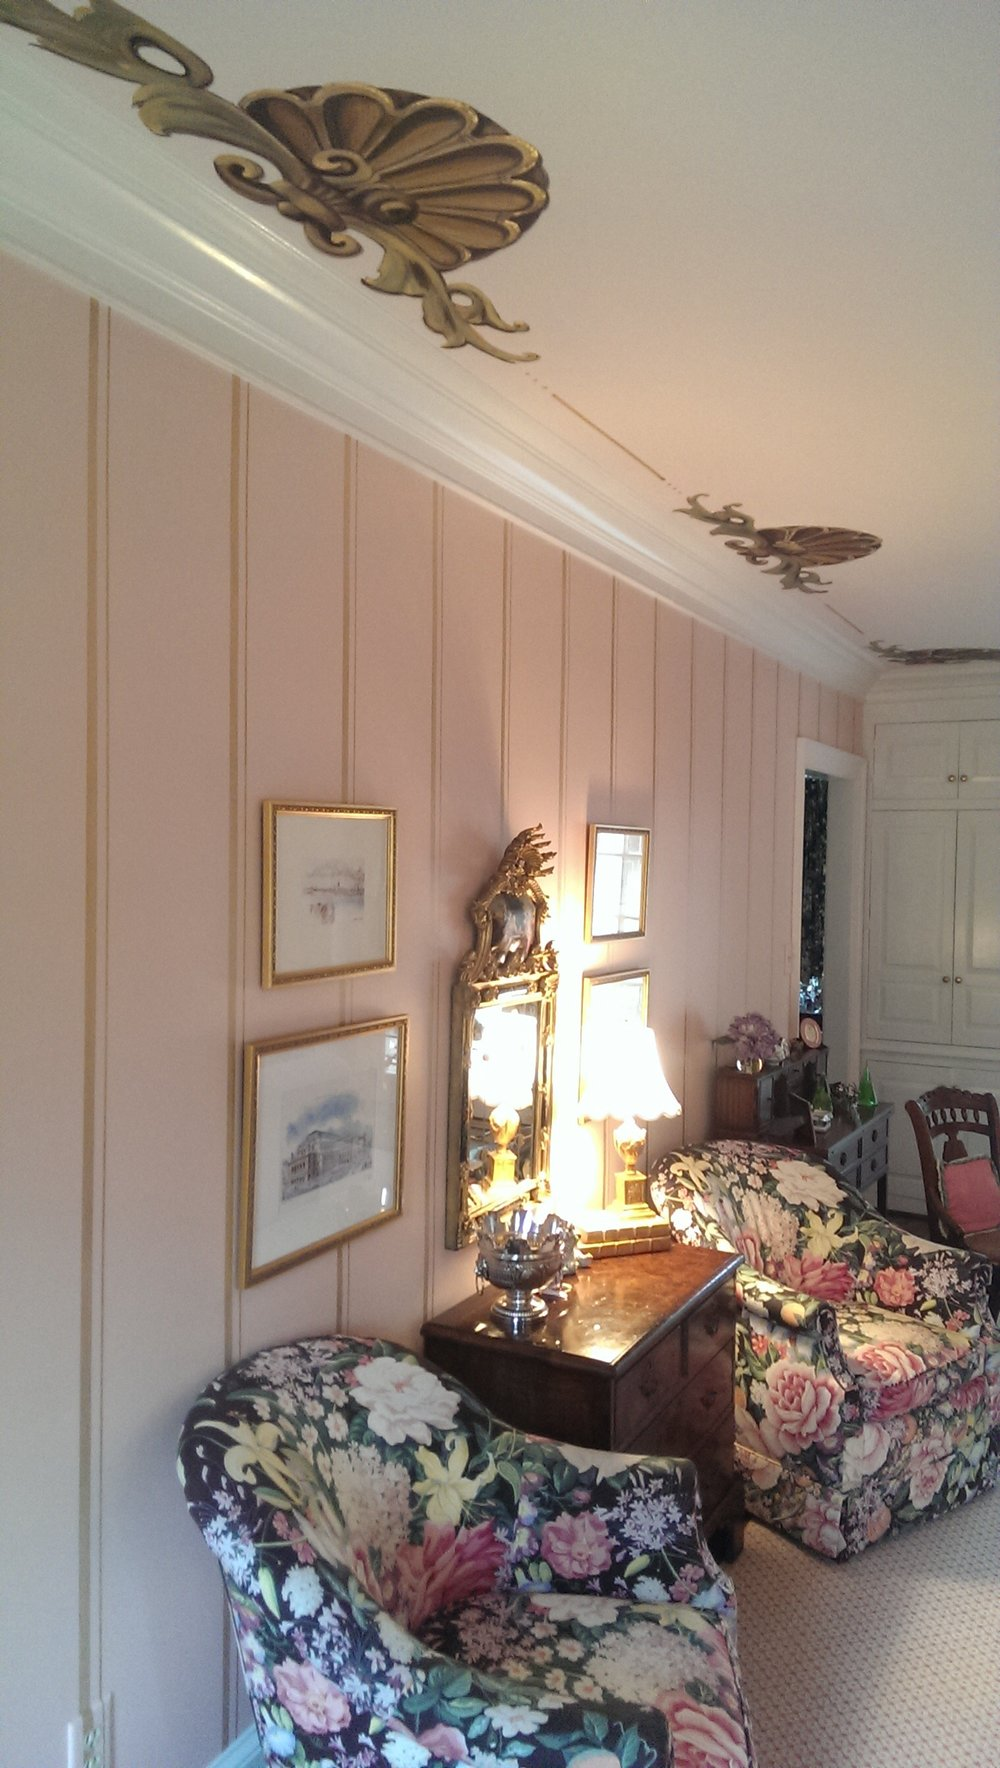 Ornate hand painted ceiling design and gold striped walls